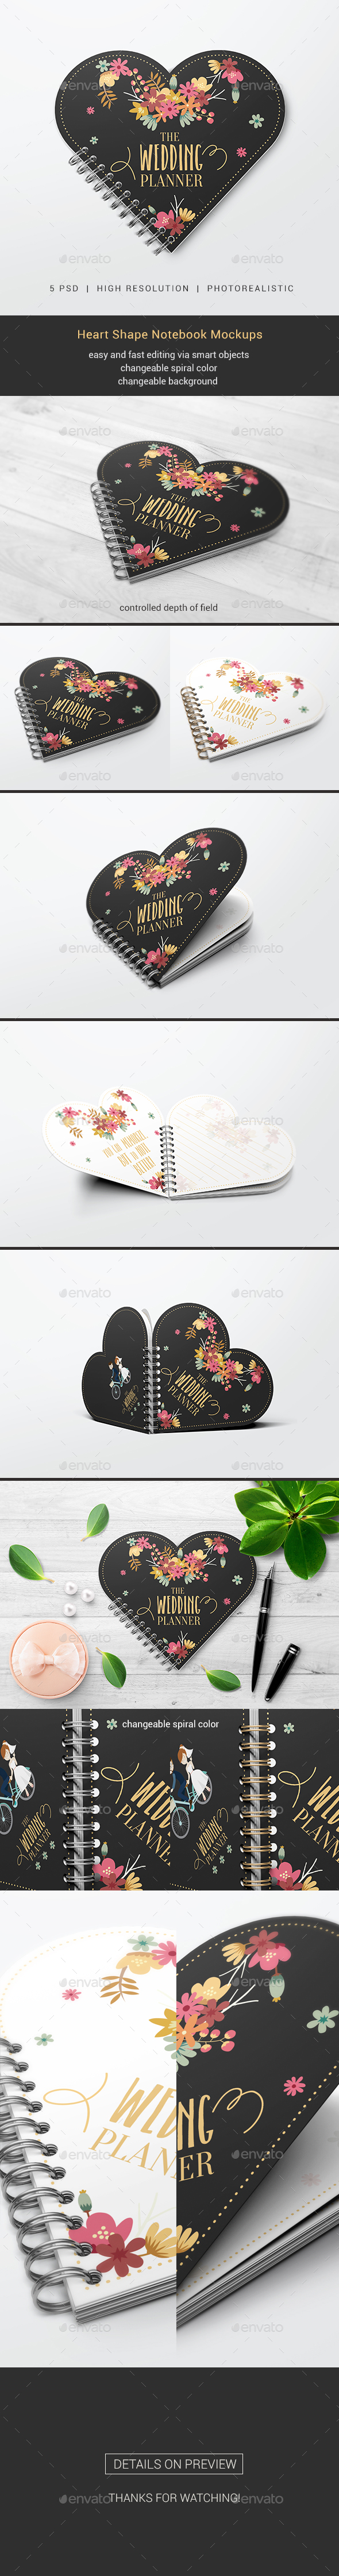 Heart Shape Notebook Mockups - Miscellaneous Print